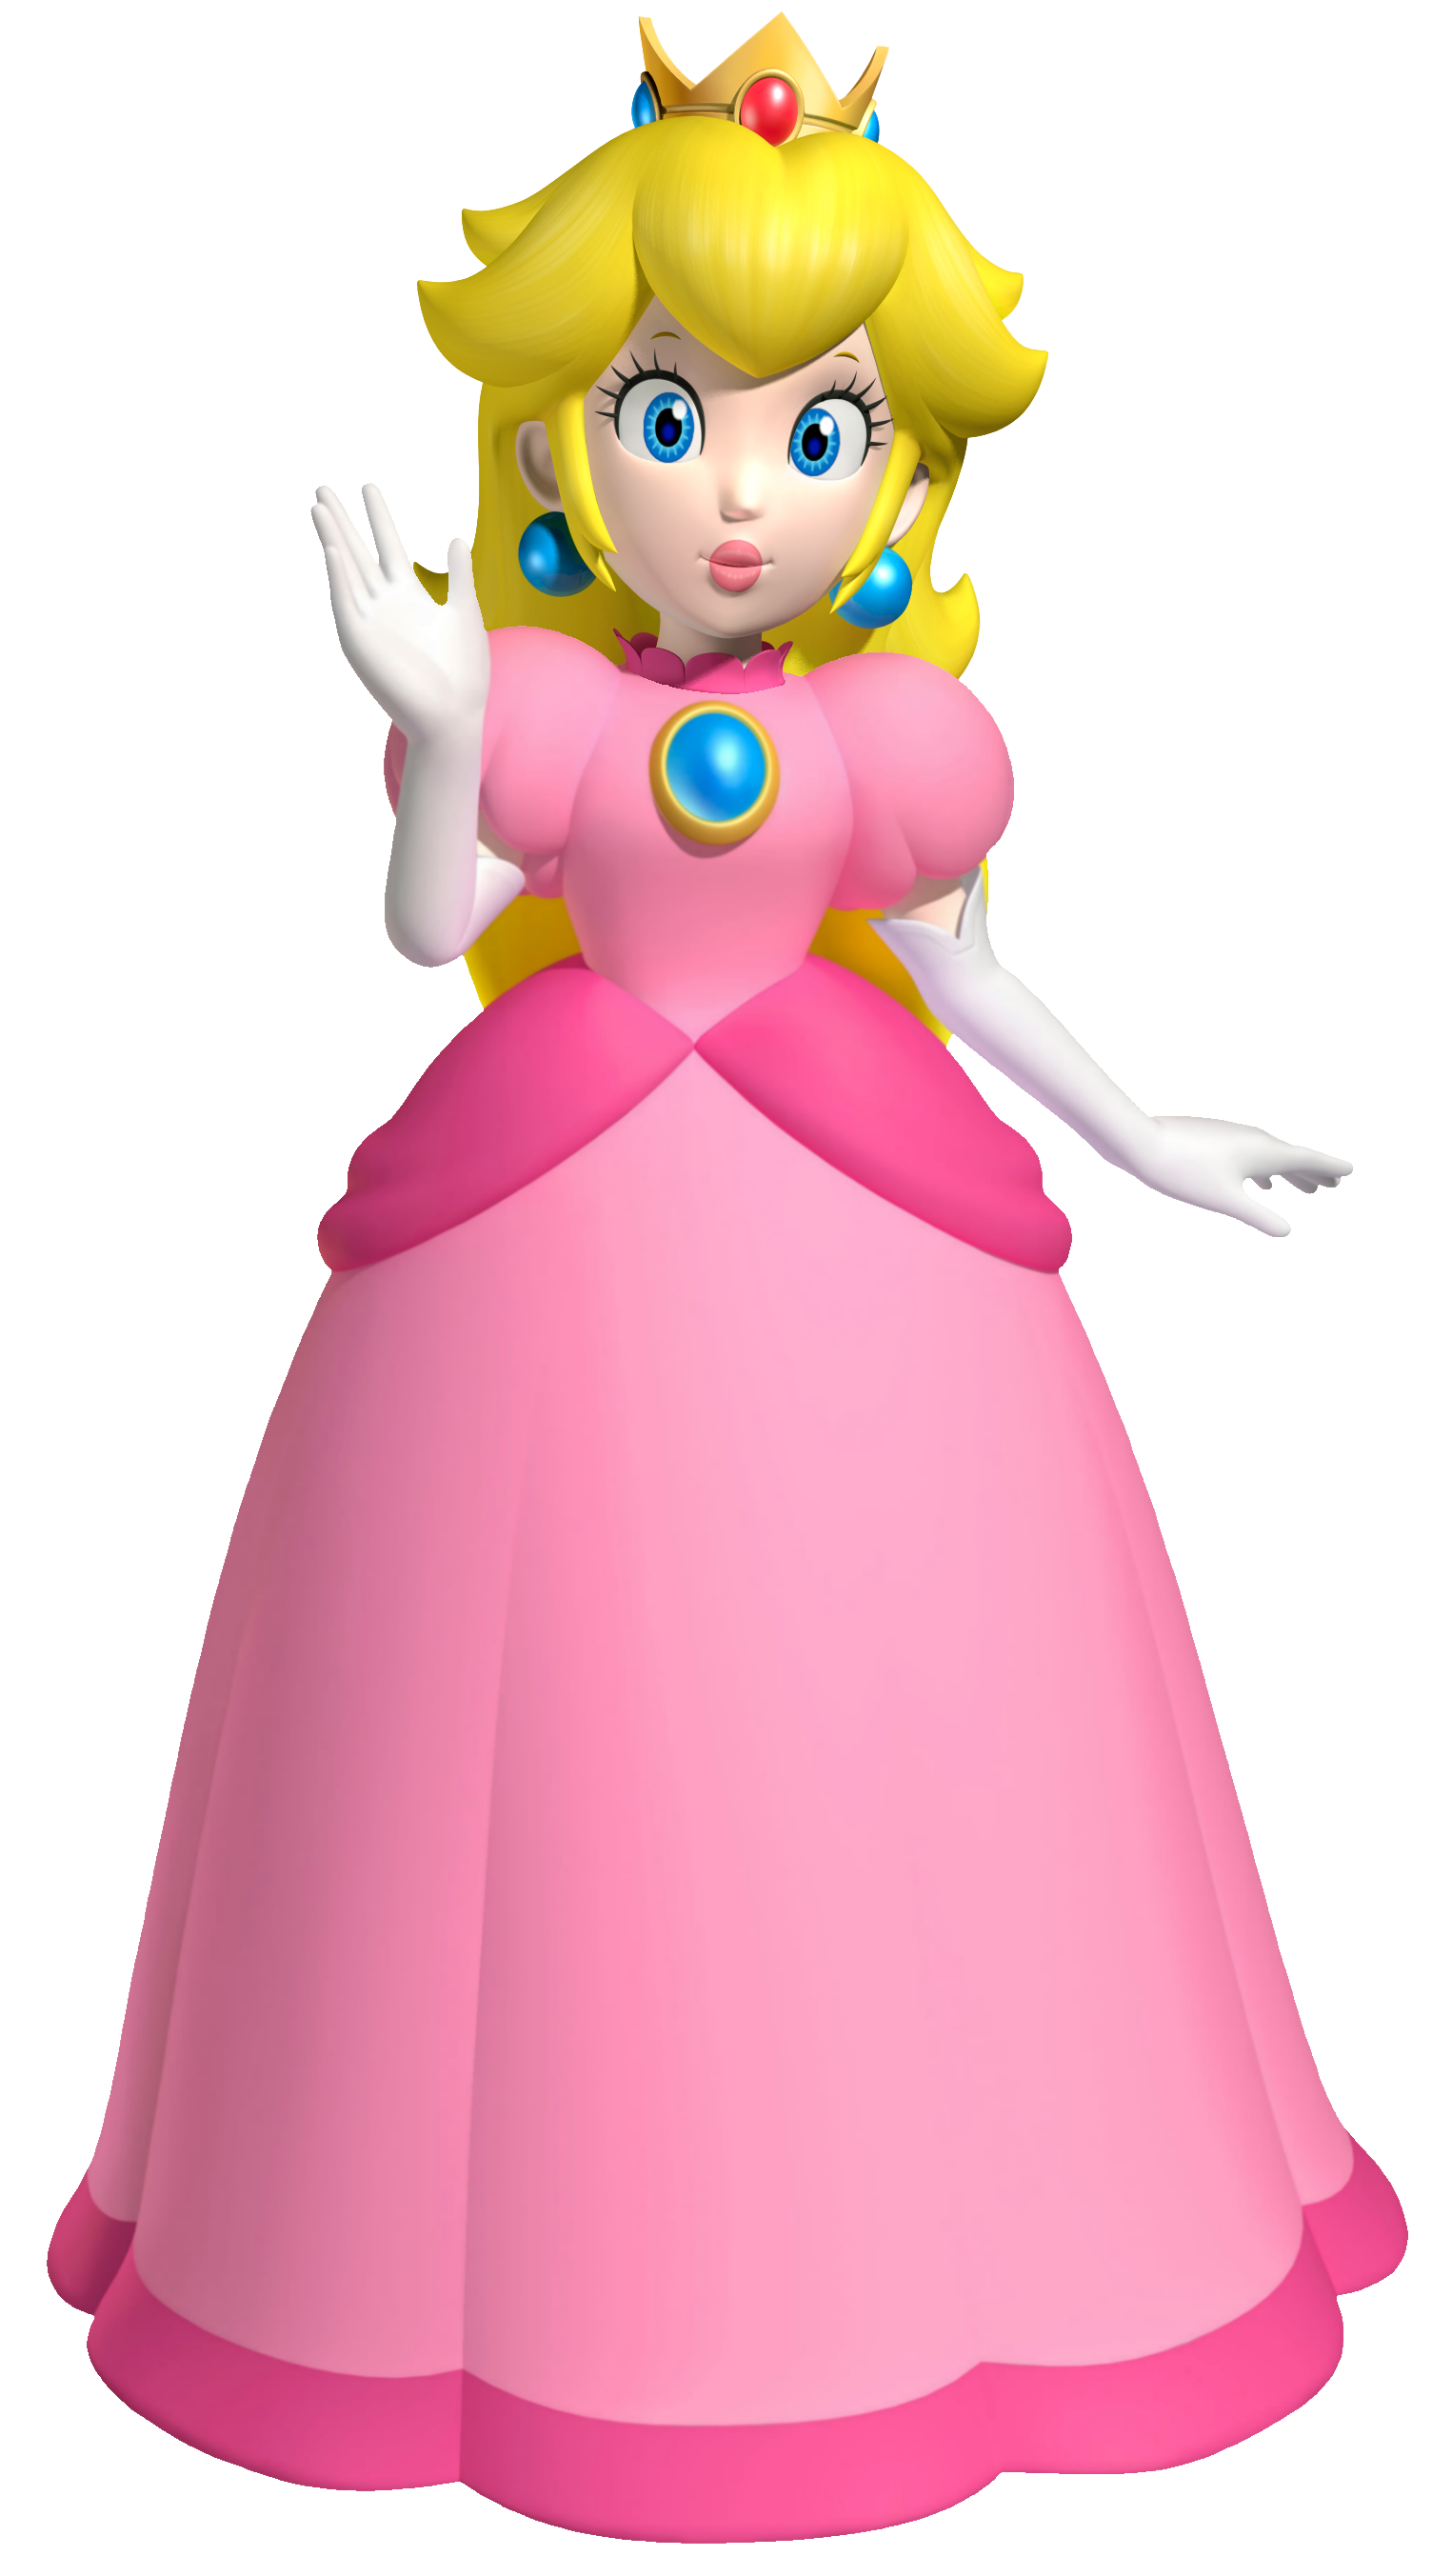 Your princess is in another castle princess peach - Princesse mario bros ...